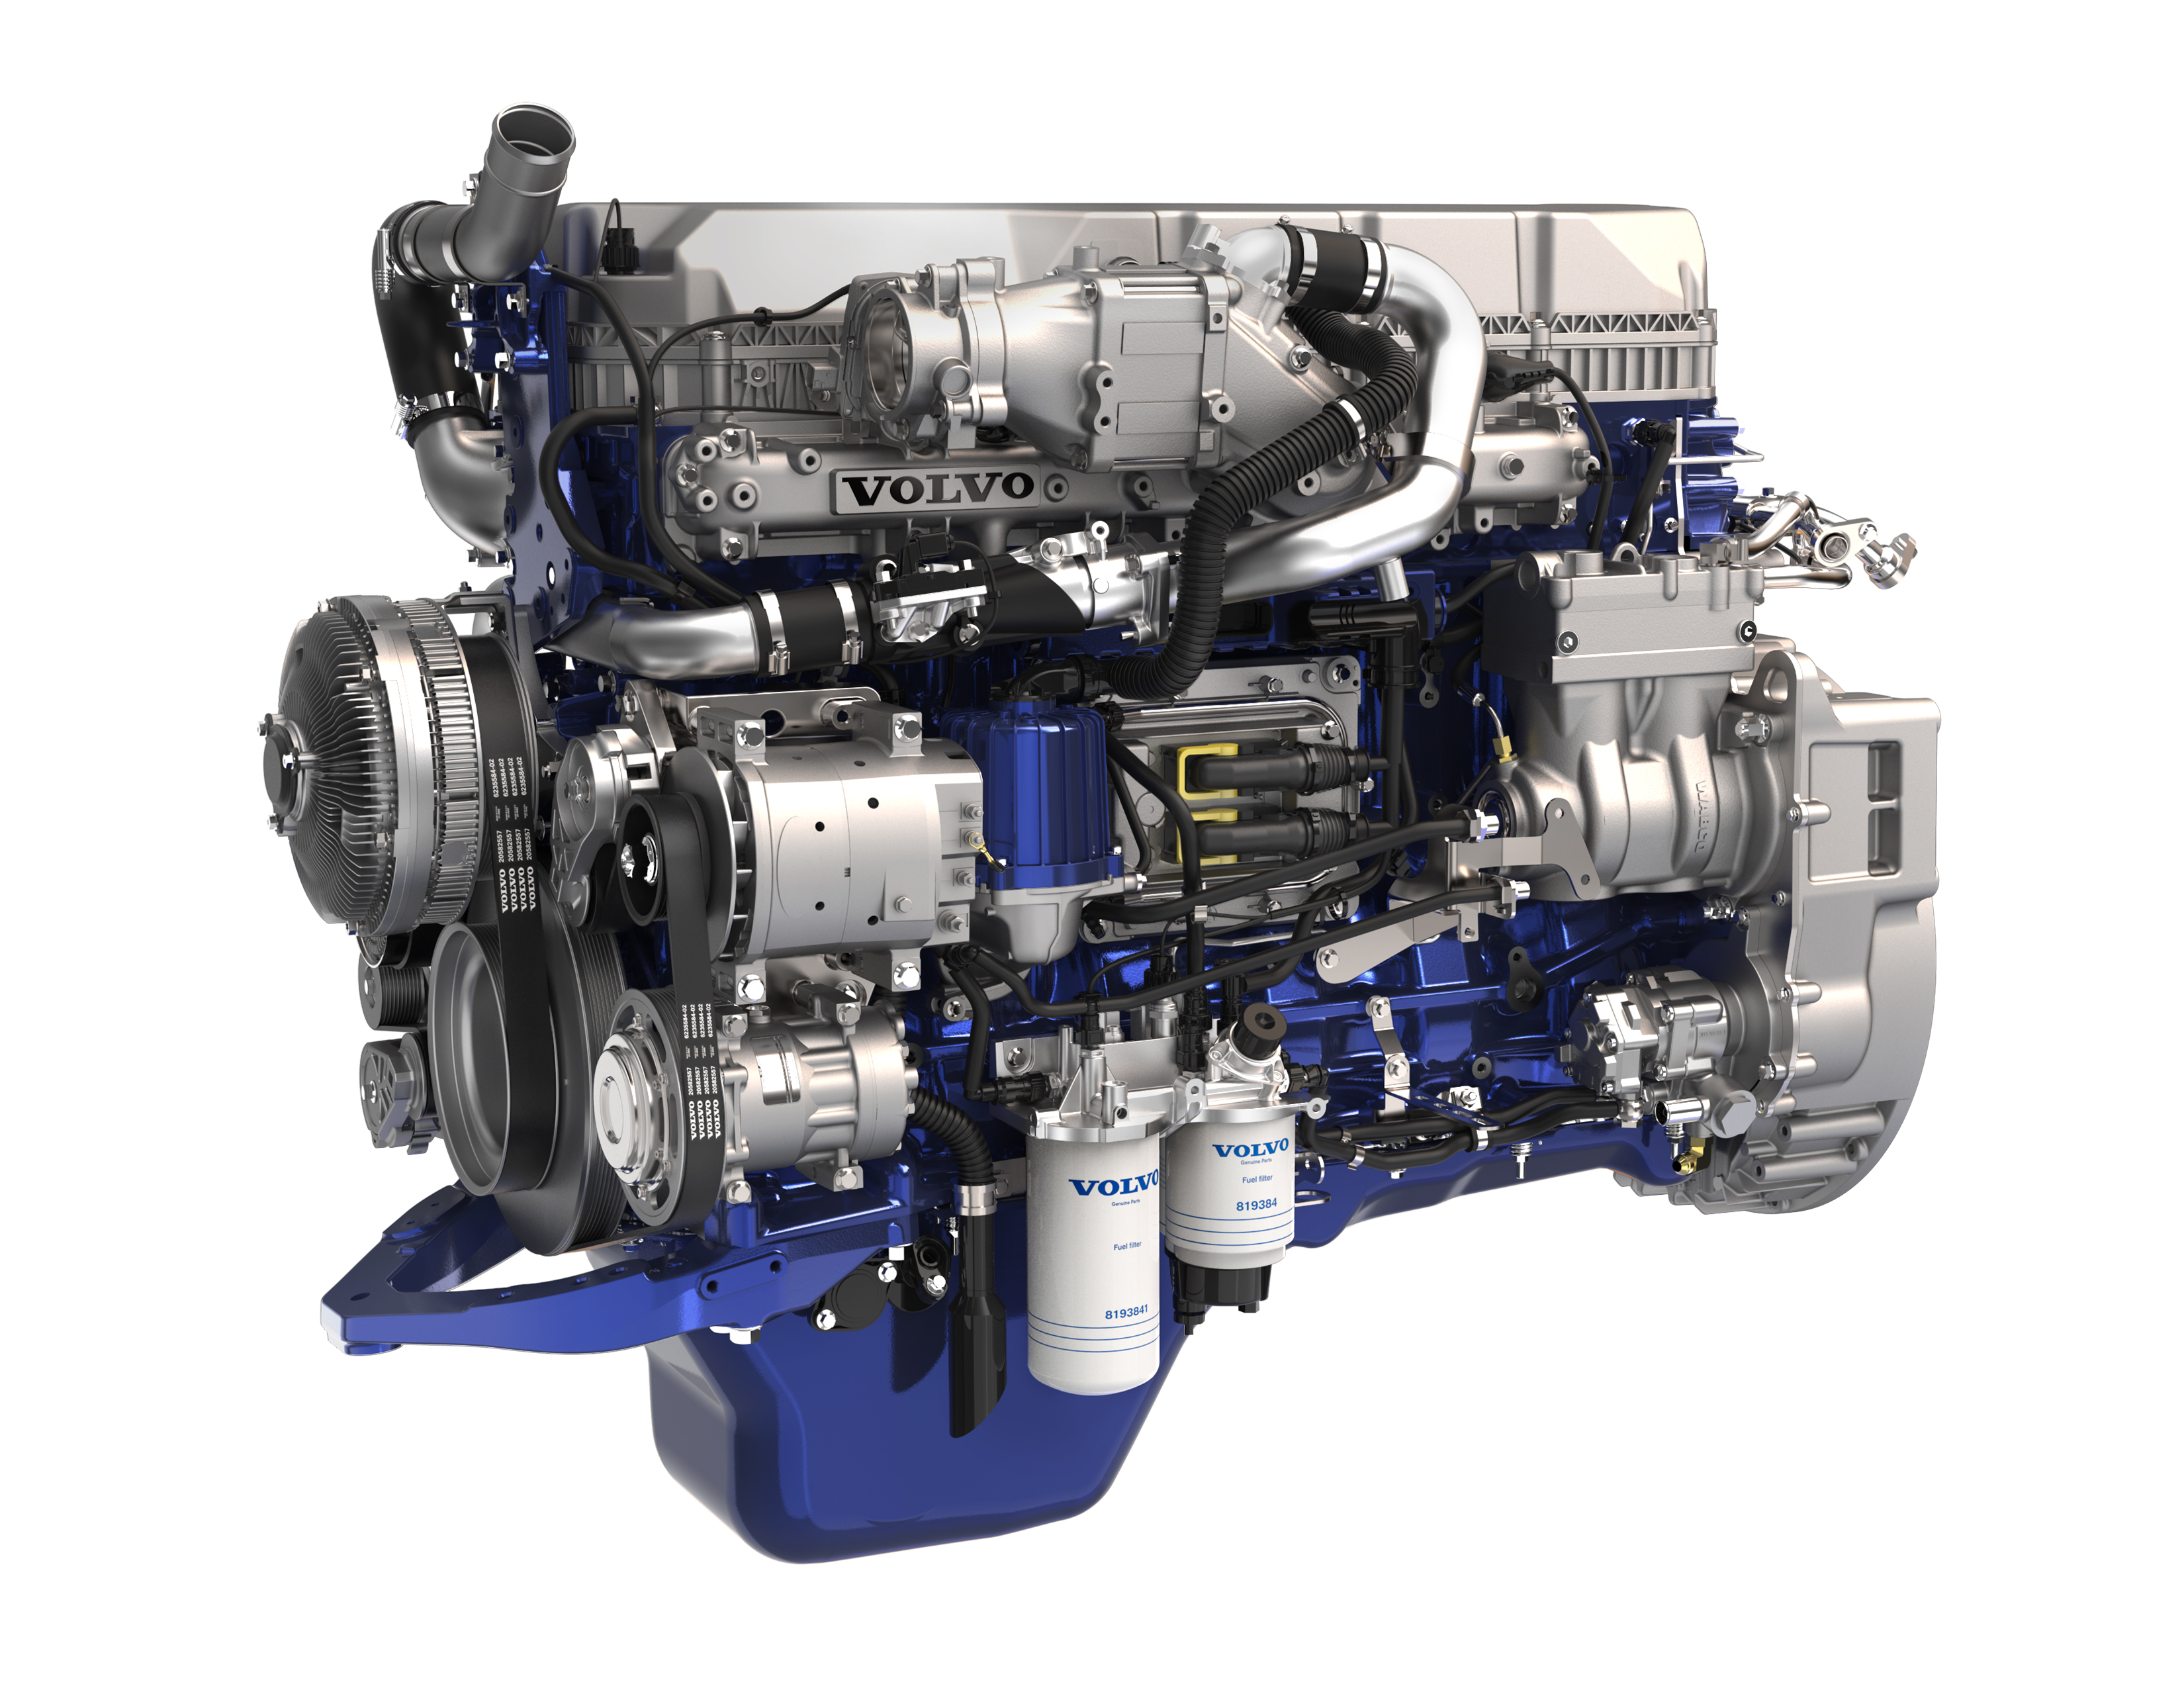 Volvo engine photo - 2